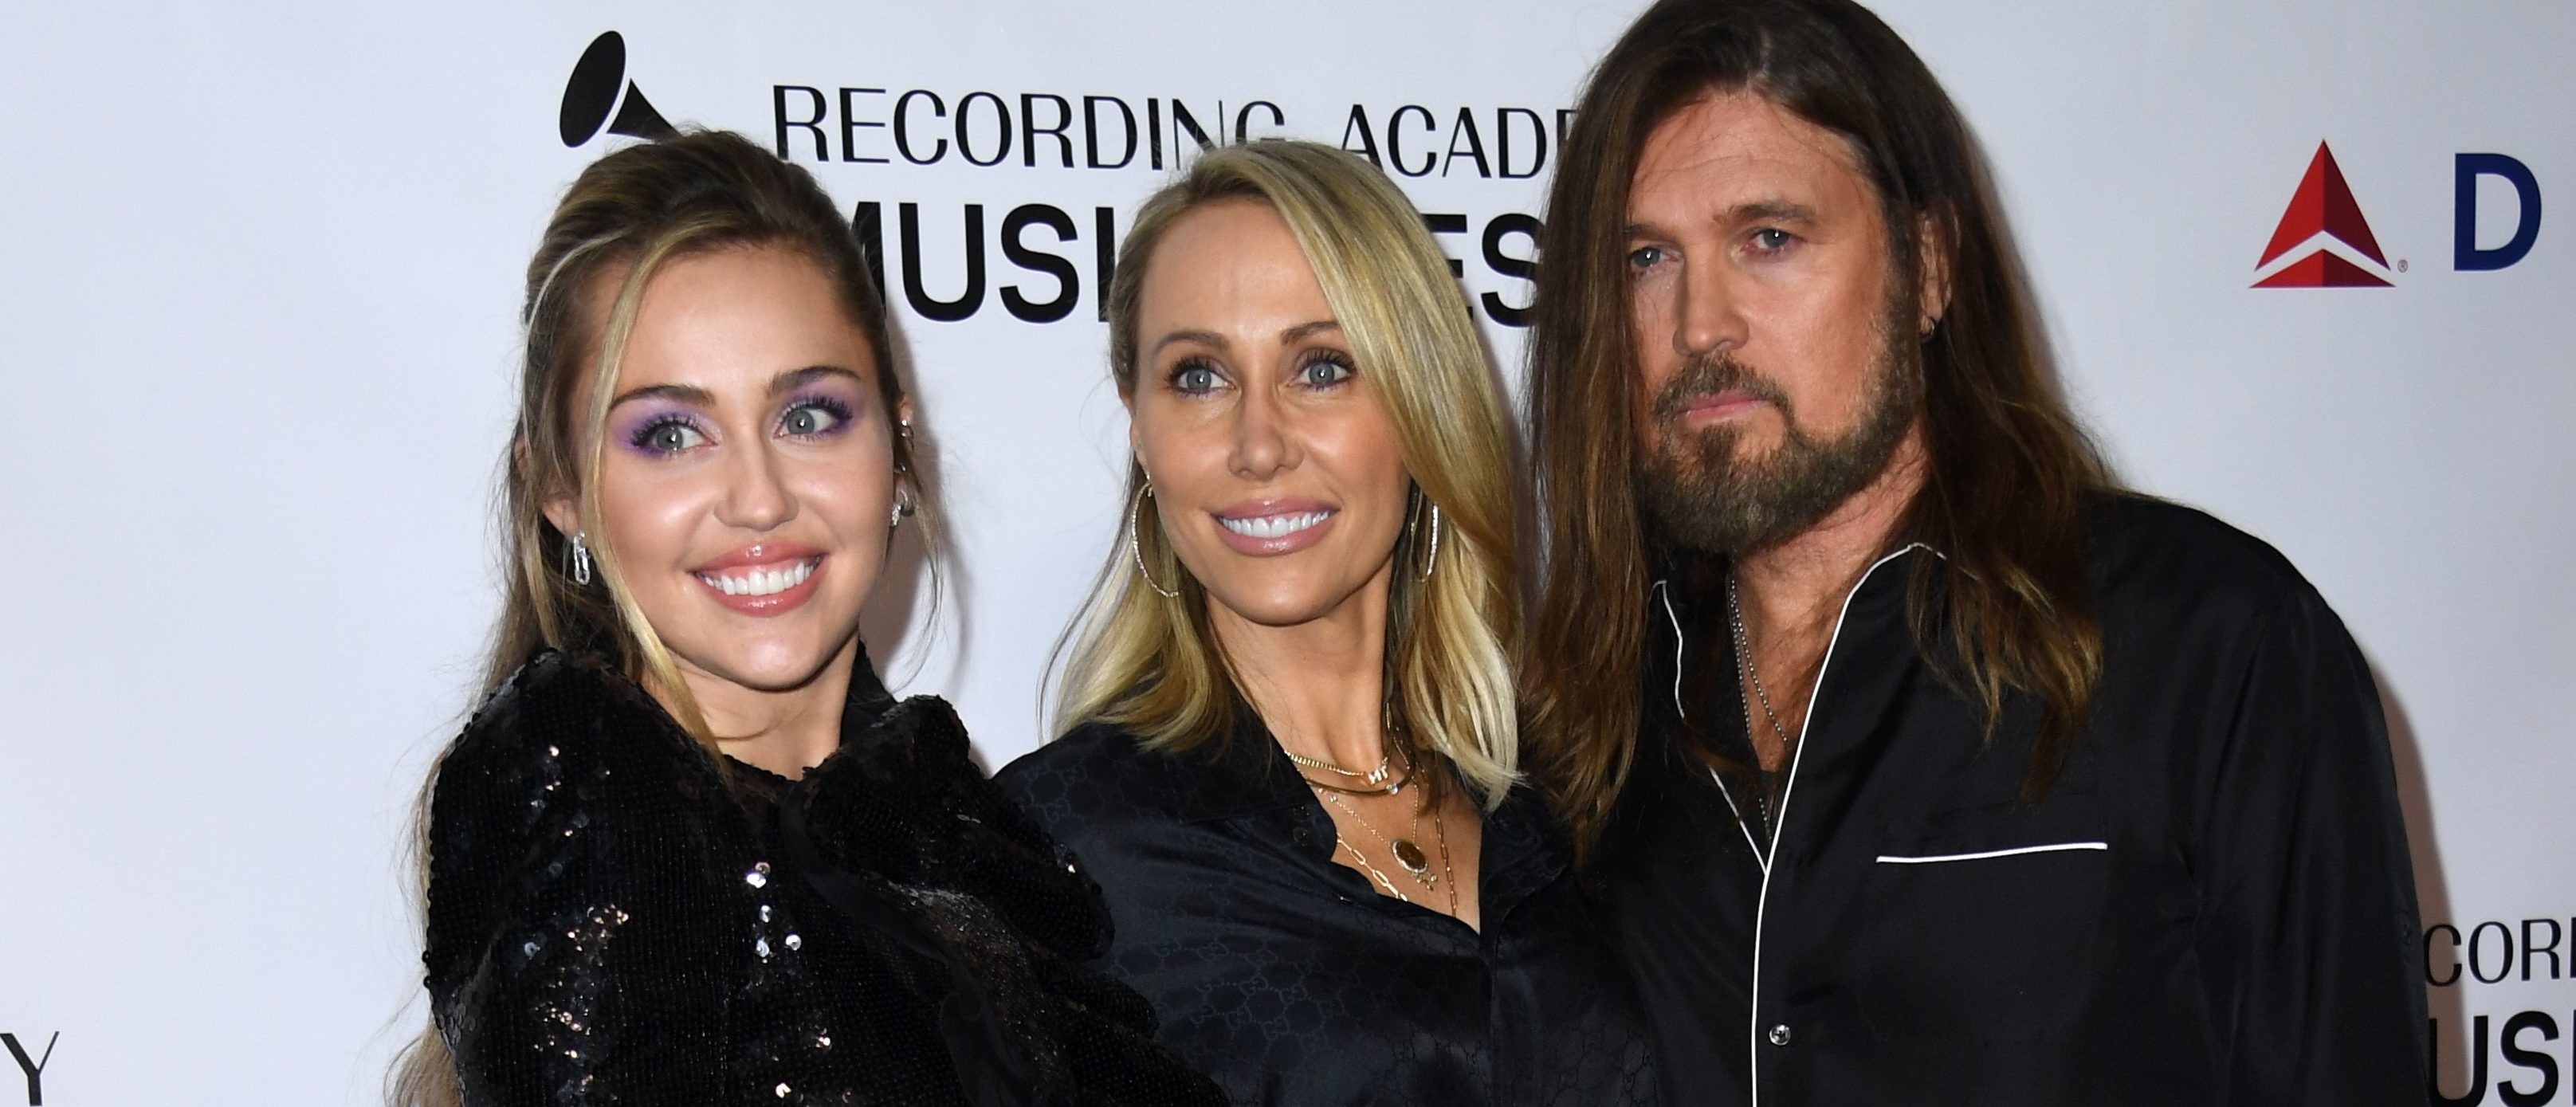 People Are Accusing Miley Cyrus' Mom Of White Privilege After This Photo Goes Viral